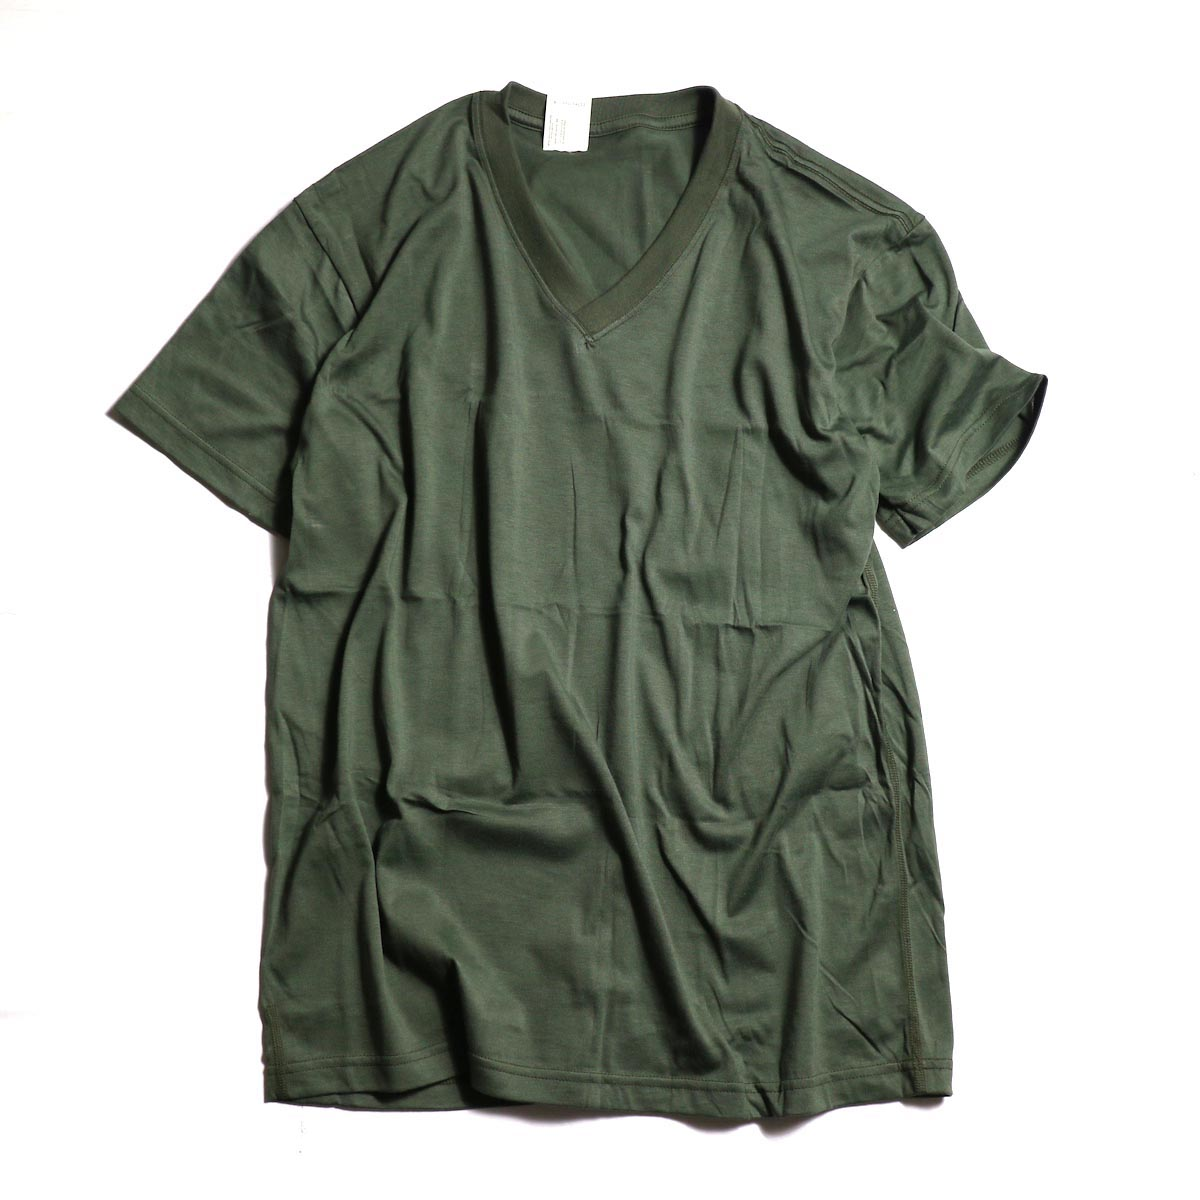 N.HOOLYWOOD T.P.E.S. BARRACKS KIT /  17-6225 V NECK T-SHIRT -OLIVE